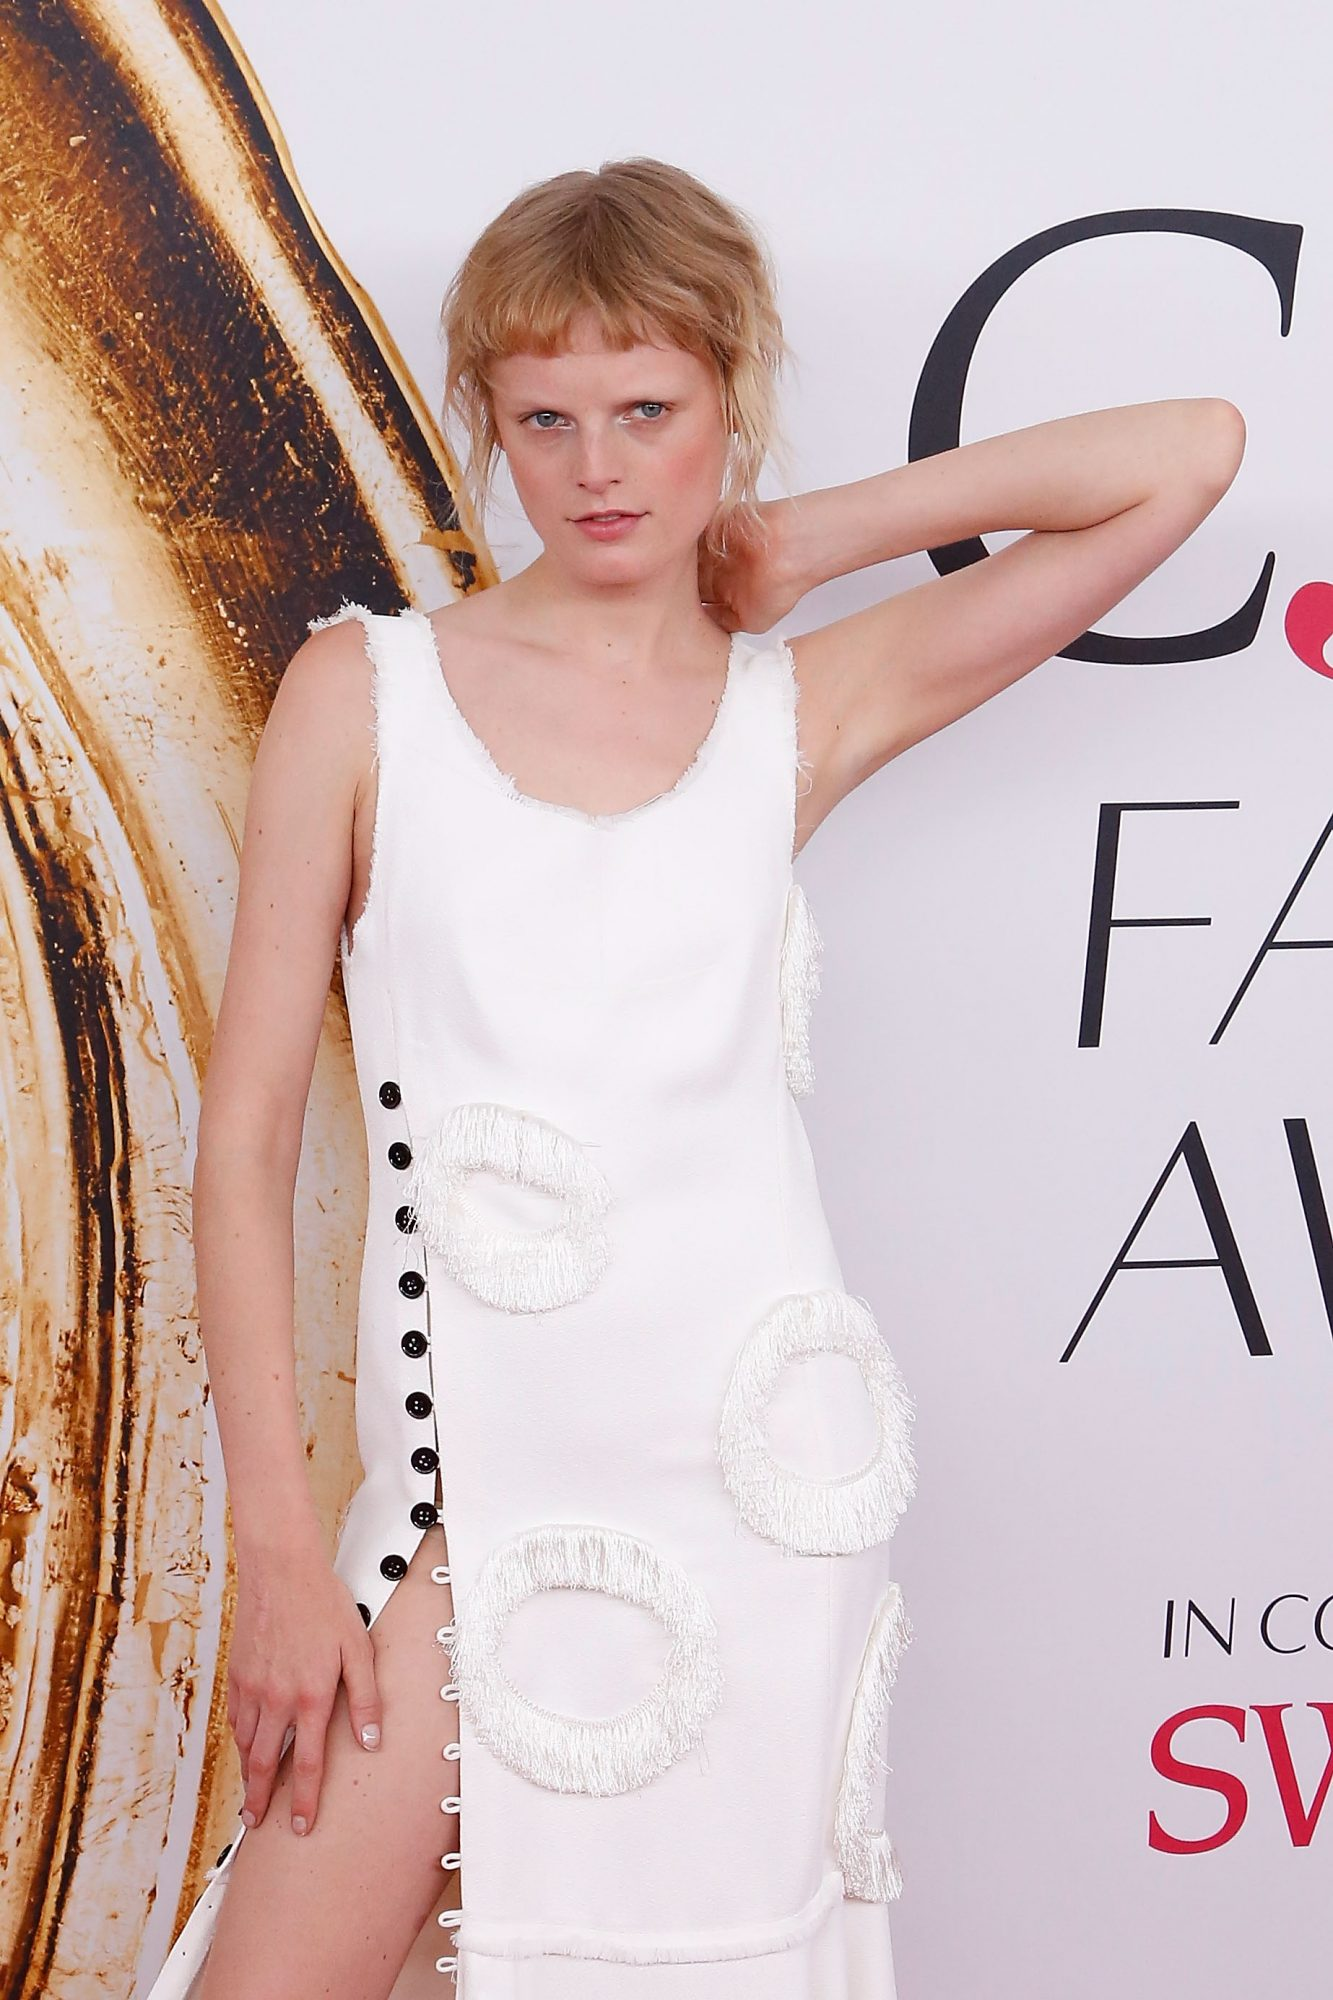 Intersex Model Hanne Gaby Odiele Reveals She's Intersex. What Does That Mean?